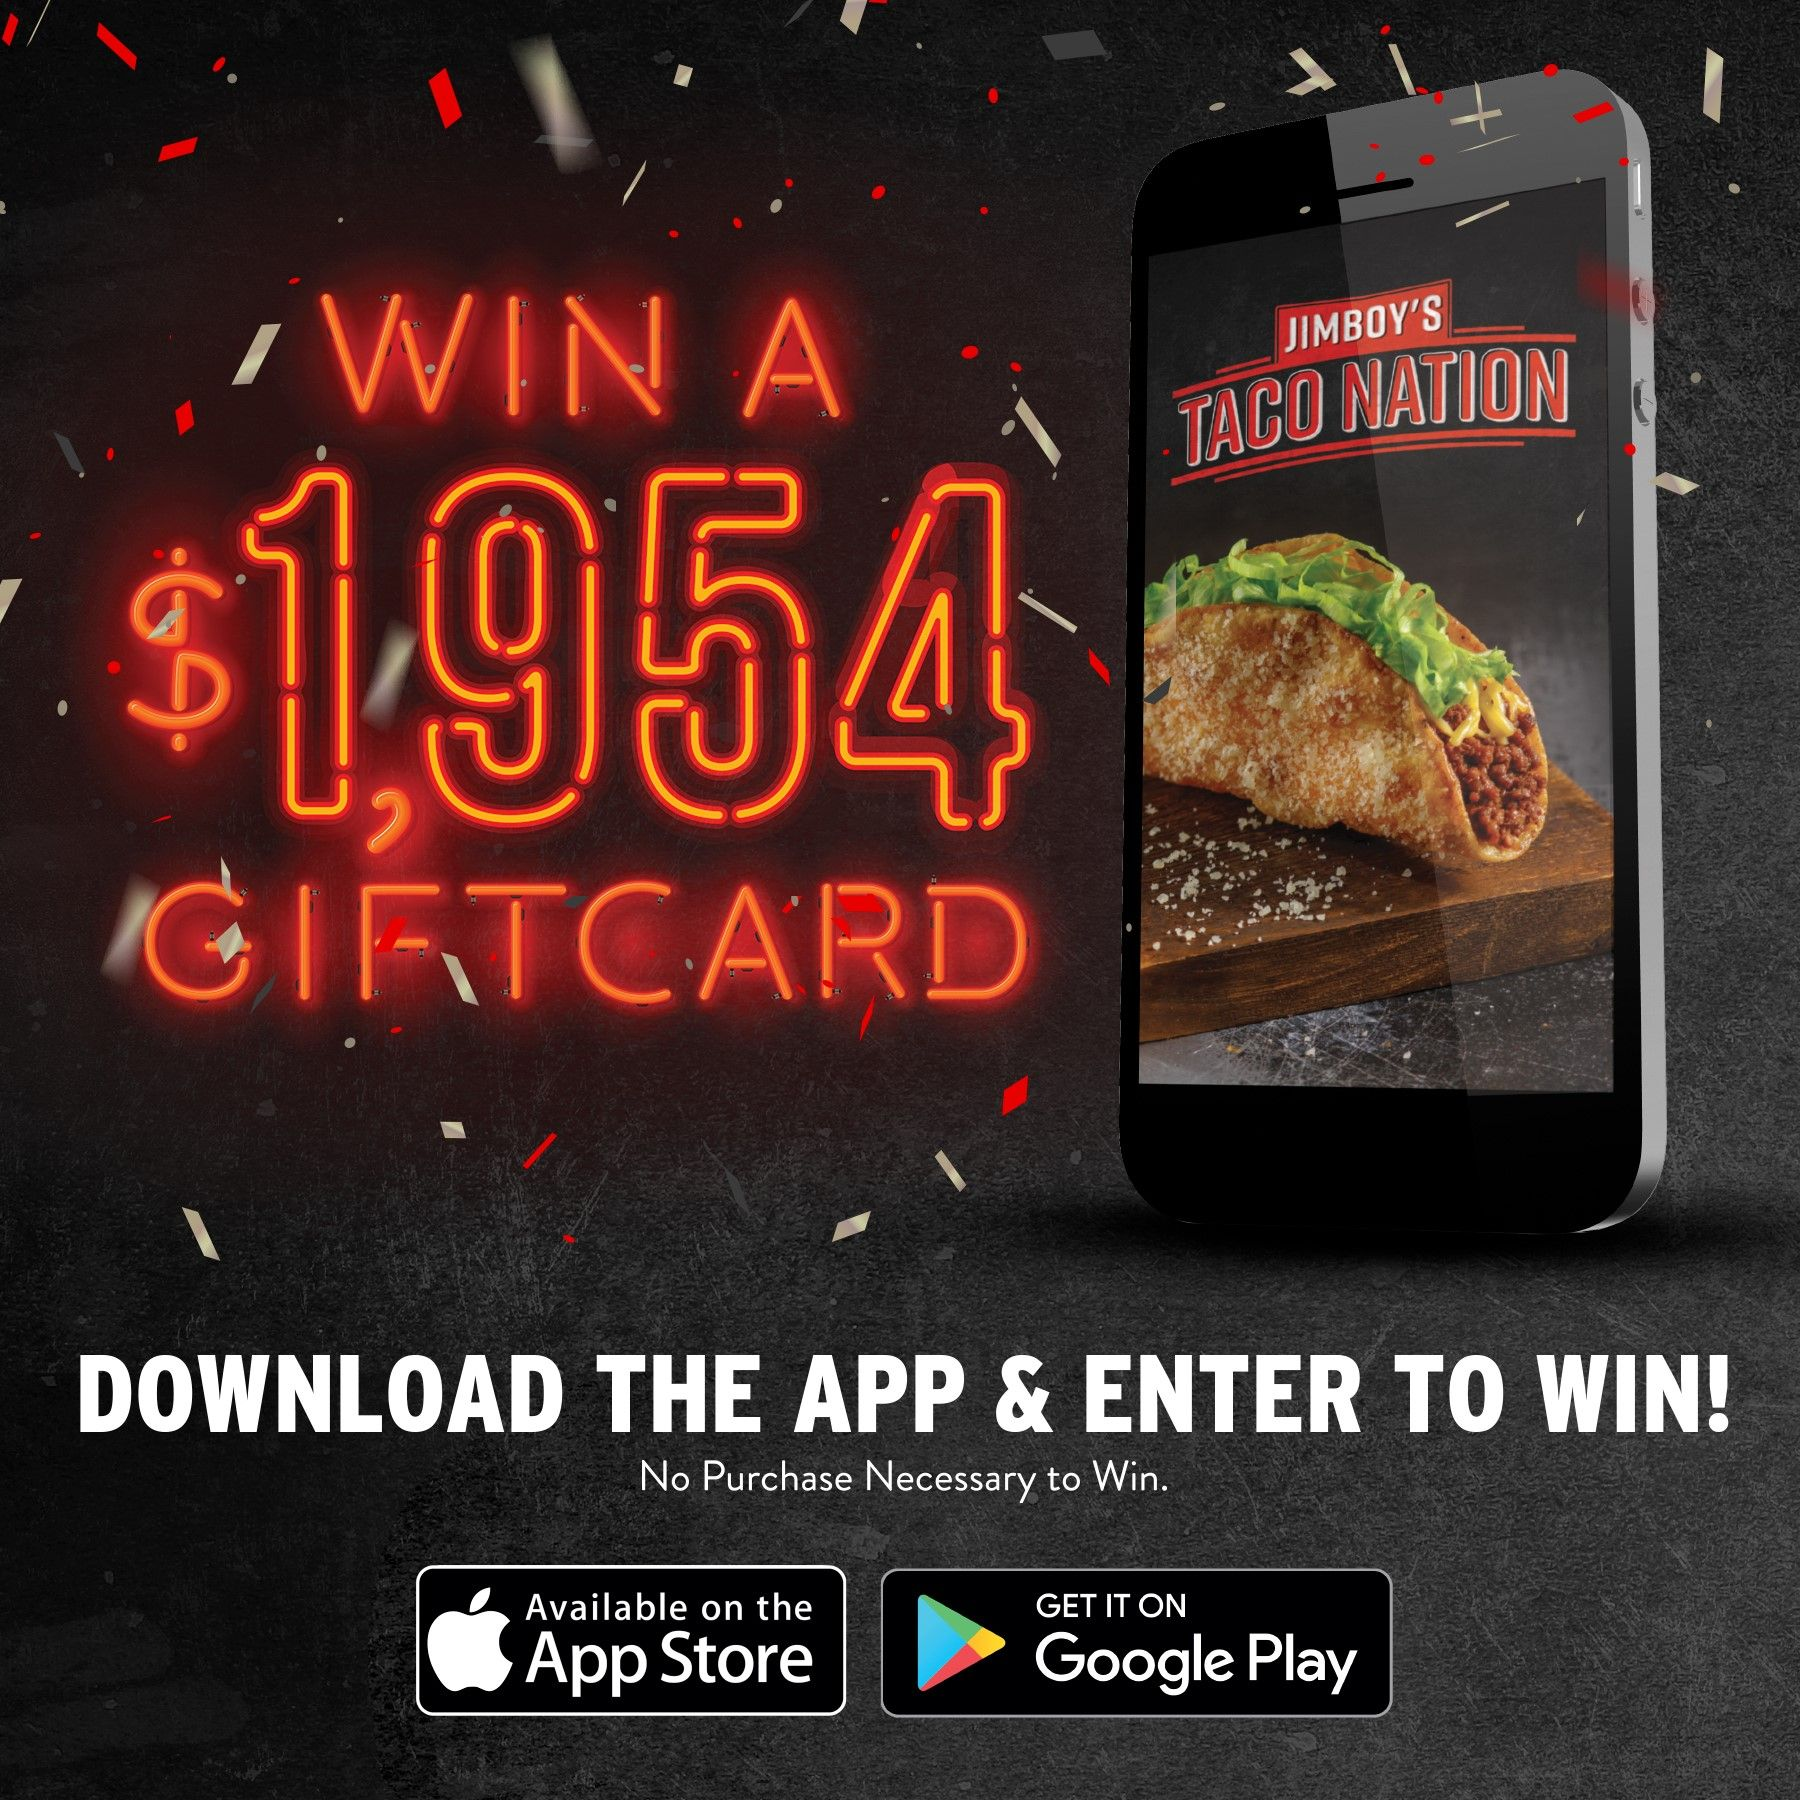 sweepstakes app jimboy s tacos launches mobile app with 1 954 sweepstakes 6762